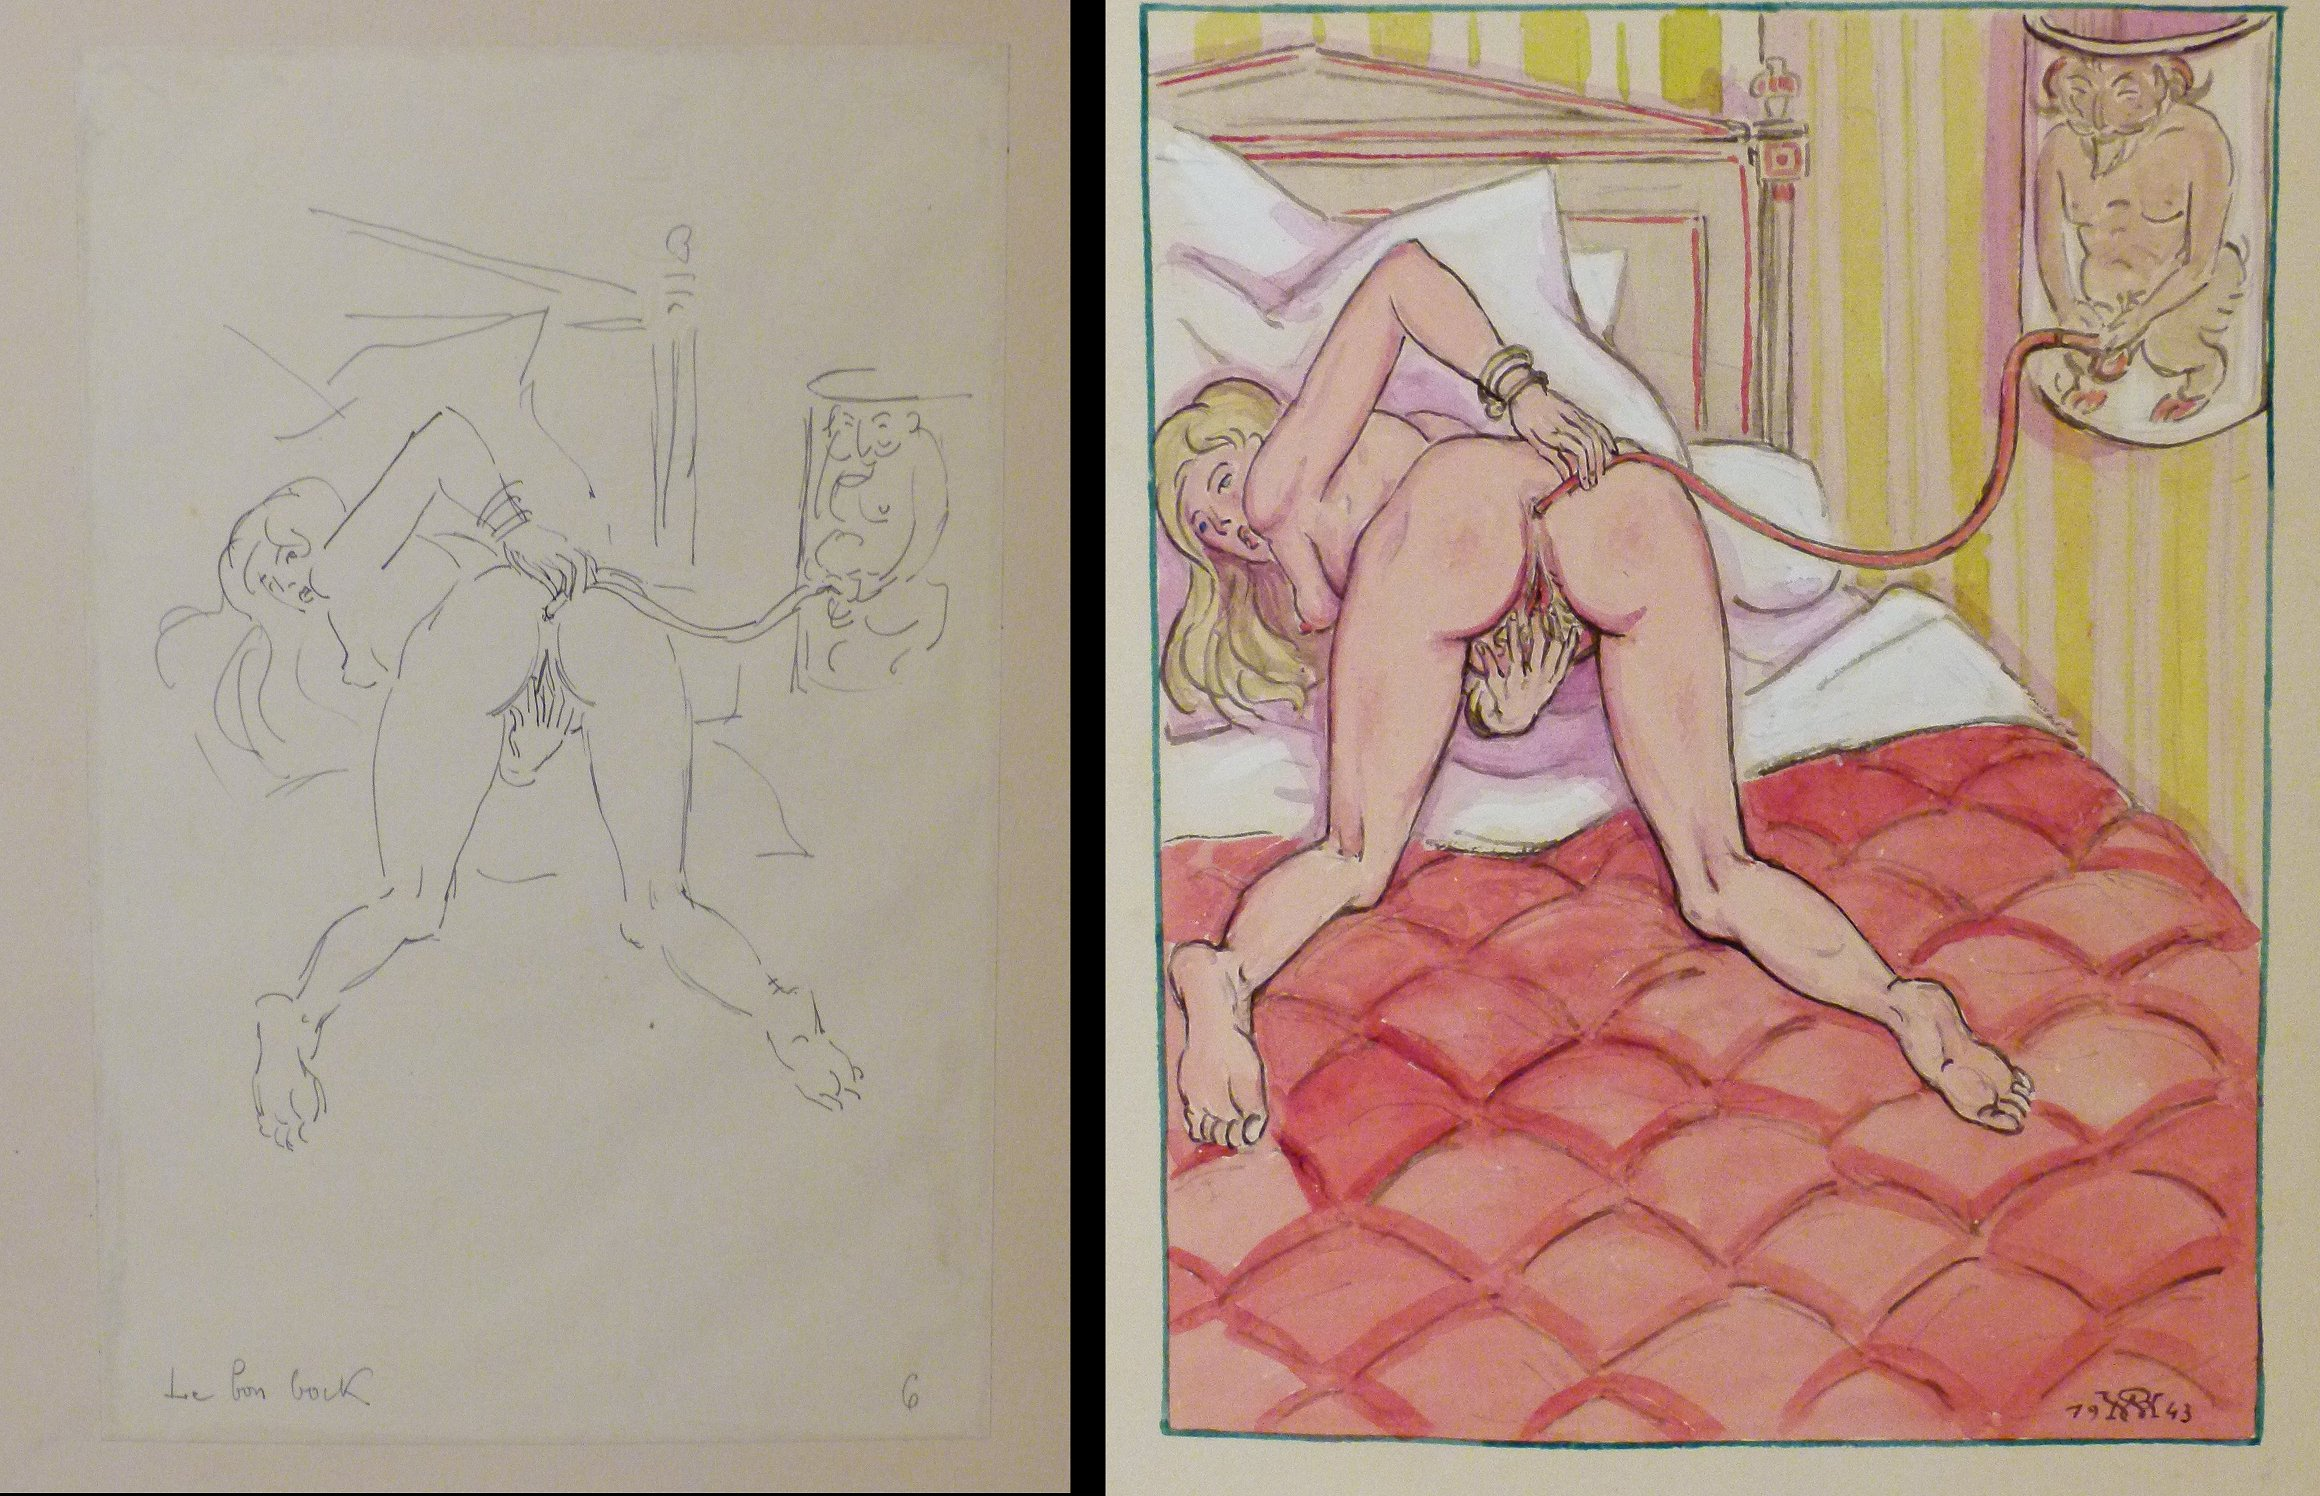 robet west erotic album watercolors american art for sale antiques